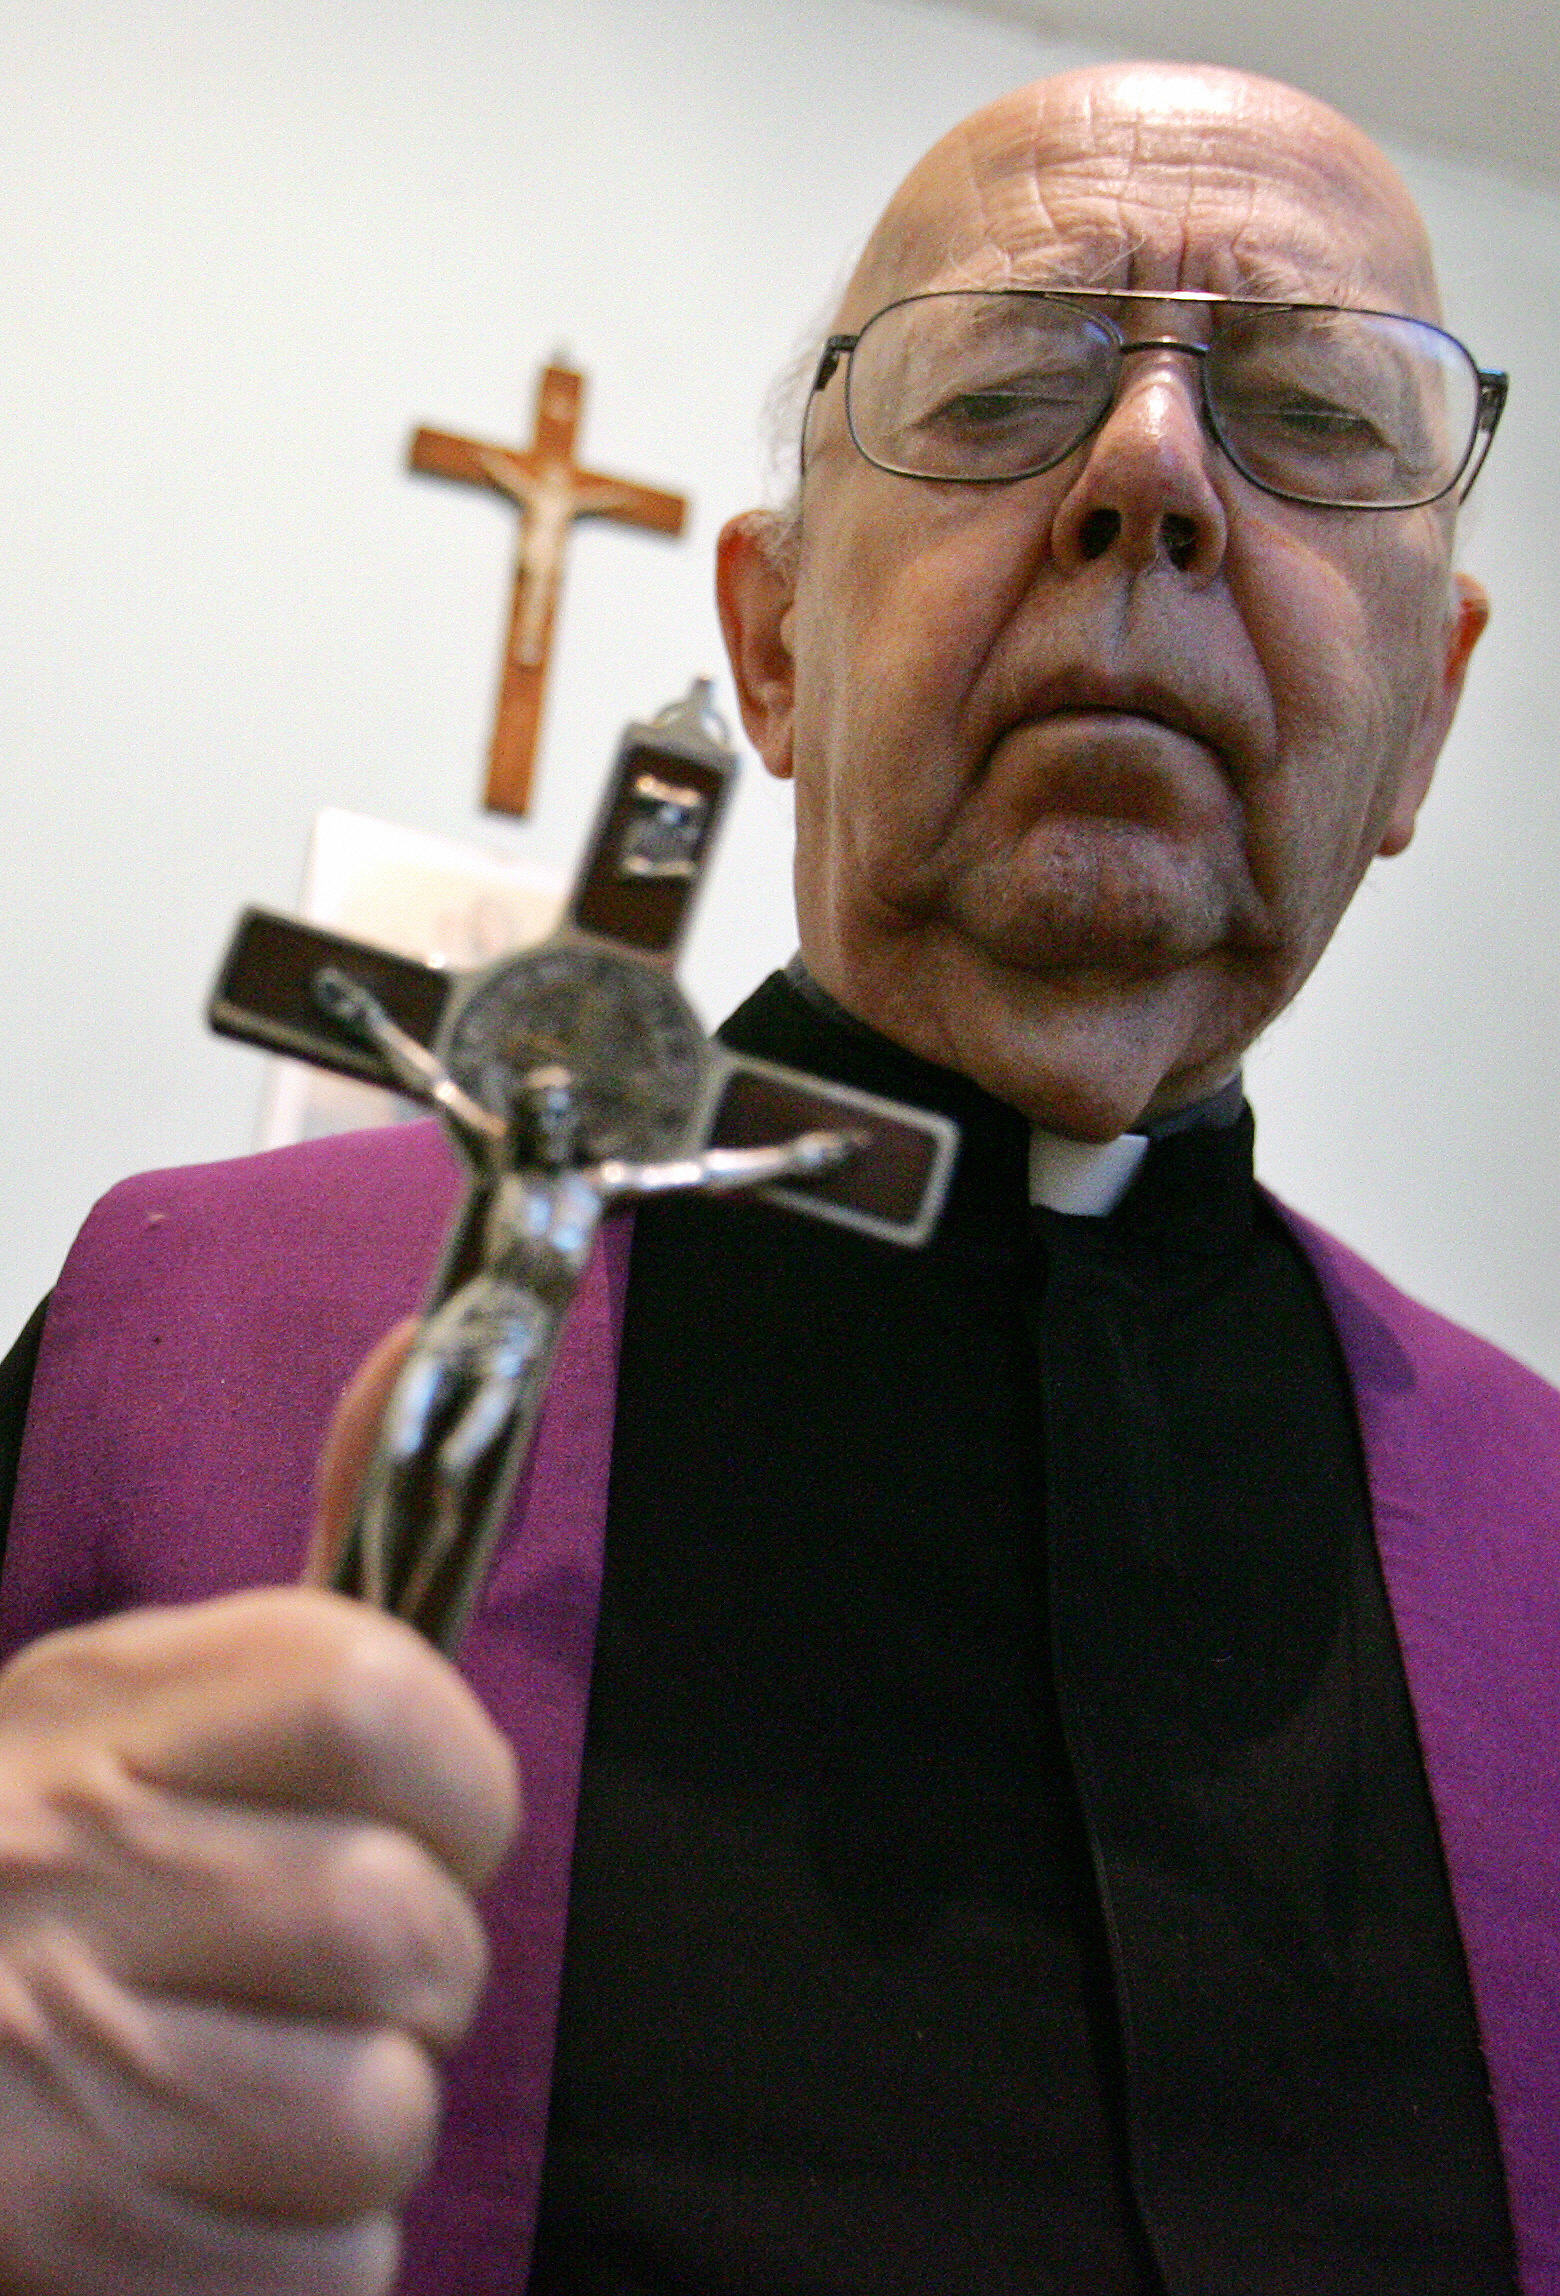 ROME, Vatican: Don Gabriele Amorth, an exorcist in the diocese of Rome and the president of honour of the Association of Exorcists poses, 10 October 2005 in Rome. For the second time a exorcism seminary will take place in Vatican city, 13 October 2005. (GIULIO NAPOLITANO/AFP/Getty Images)